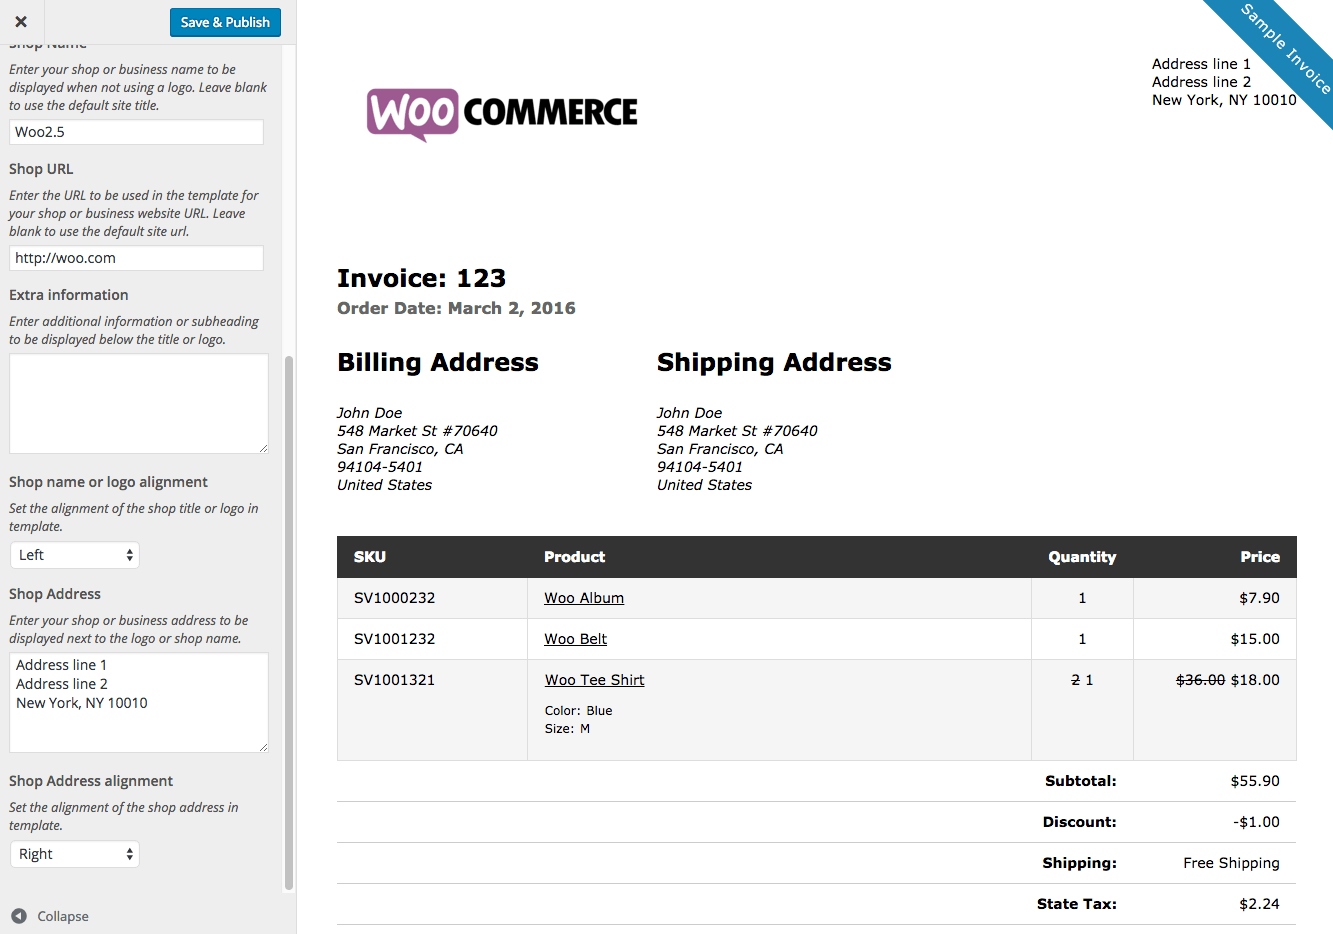 Totallocalus  Inspiring Woocommerce Print Invoices Amp Packing Lists  Woocommerce Docs With Extraordinary Woocommerce Print Invoices  Packing Lists Customizer With Alluring Primark Returns No Receipt Also Receipt Pad In Addition Babies R Us Return Policy No Receipt And Best Buy Receipts As Well As Read Receipts In Gmail Additionally Best Way To Organize Receipts From Docswoocommercecom With Totallocalus  Extraordinary Woocommerce Print Invoices Amp Packing Lists  Woocommerce Docs With Alluring Woocommerce Print Invoices  Packing Lists Customizer And Inspiring Primark Returns No Receipt Also Receipt Pad In Addition Babies R Us Return Policy No Receipt From Docswoocommercecom